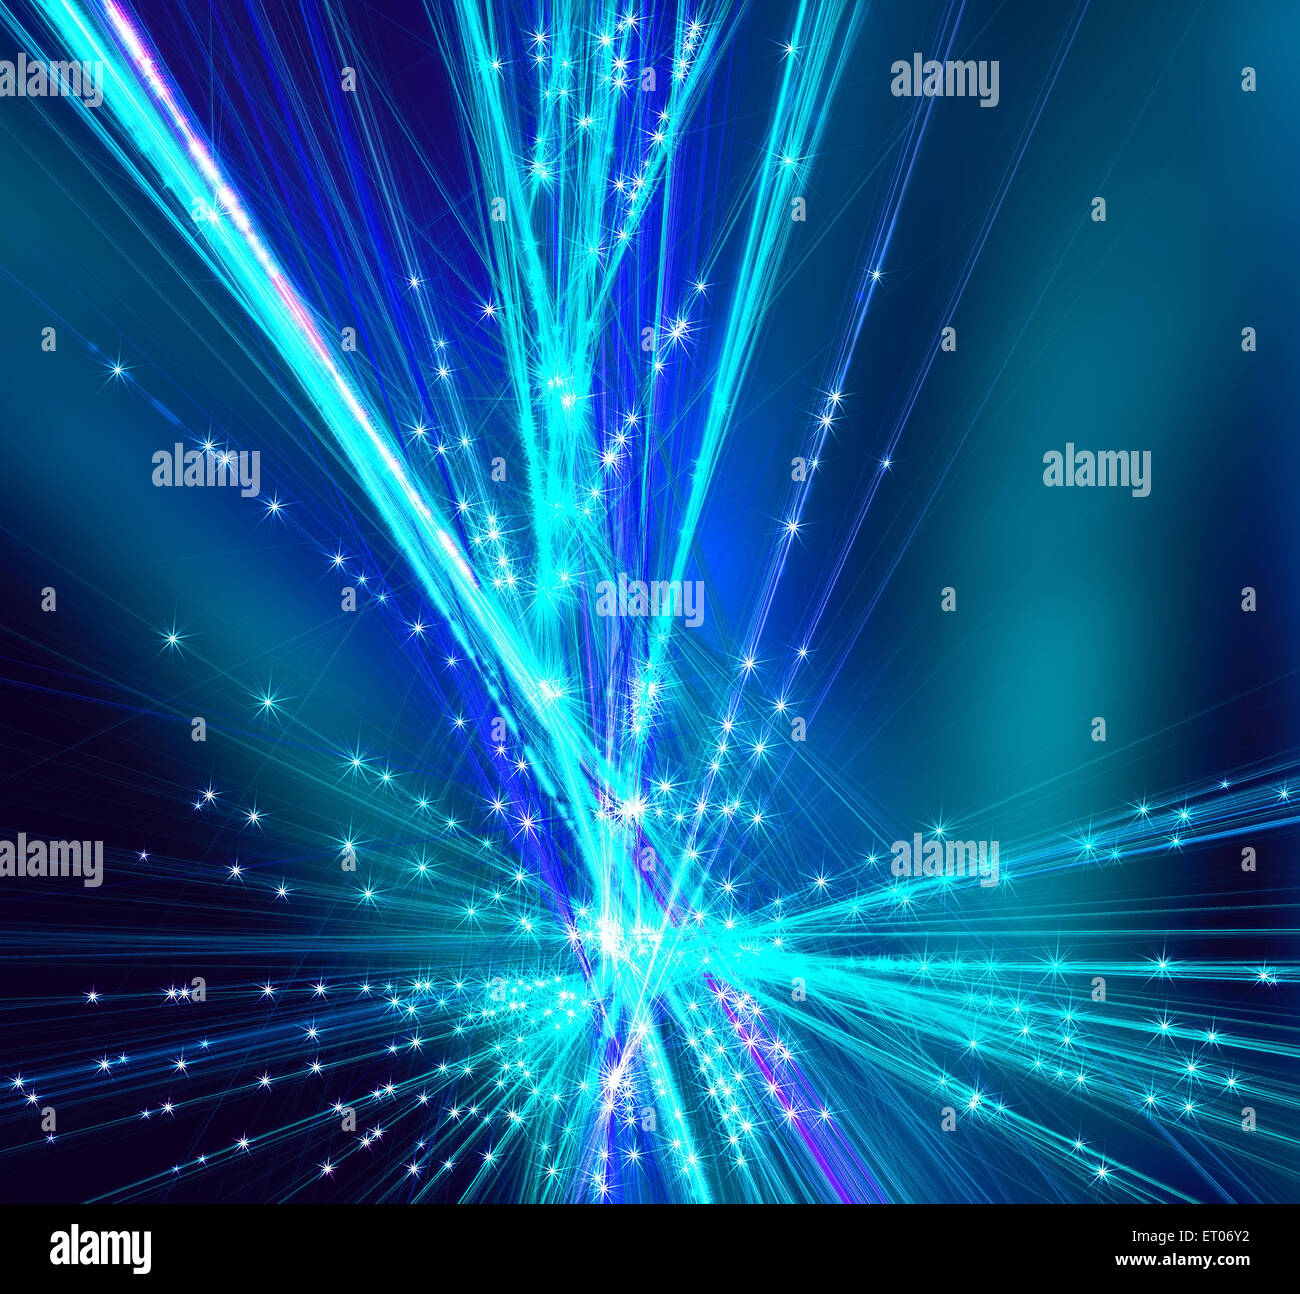 Frosty pattern shines from the center in the form of rays abstract fractal. Fractal art graphics. - Stock Image